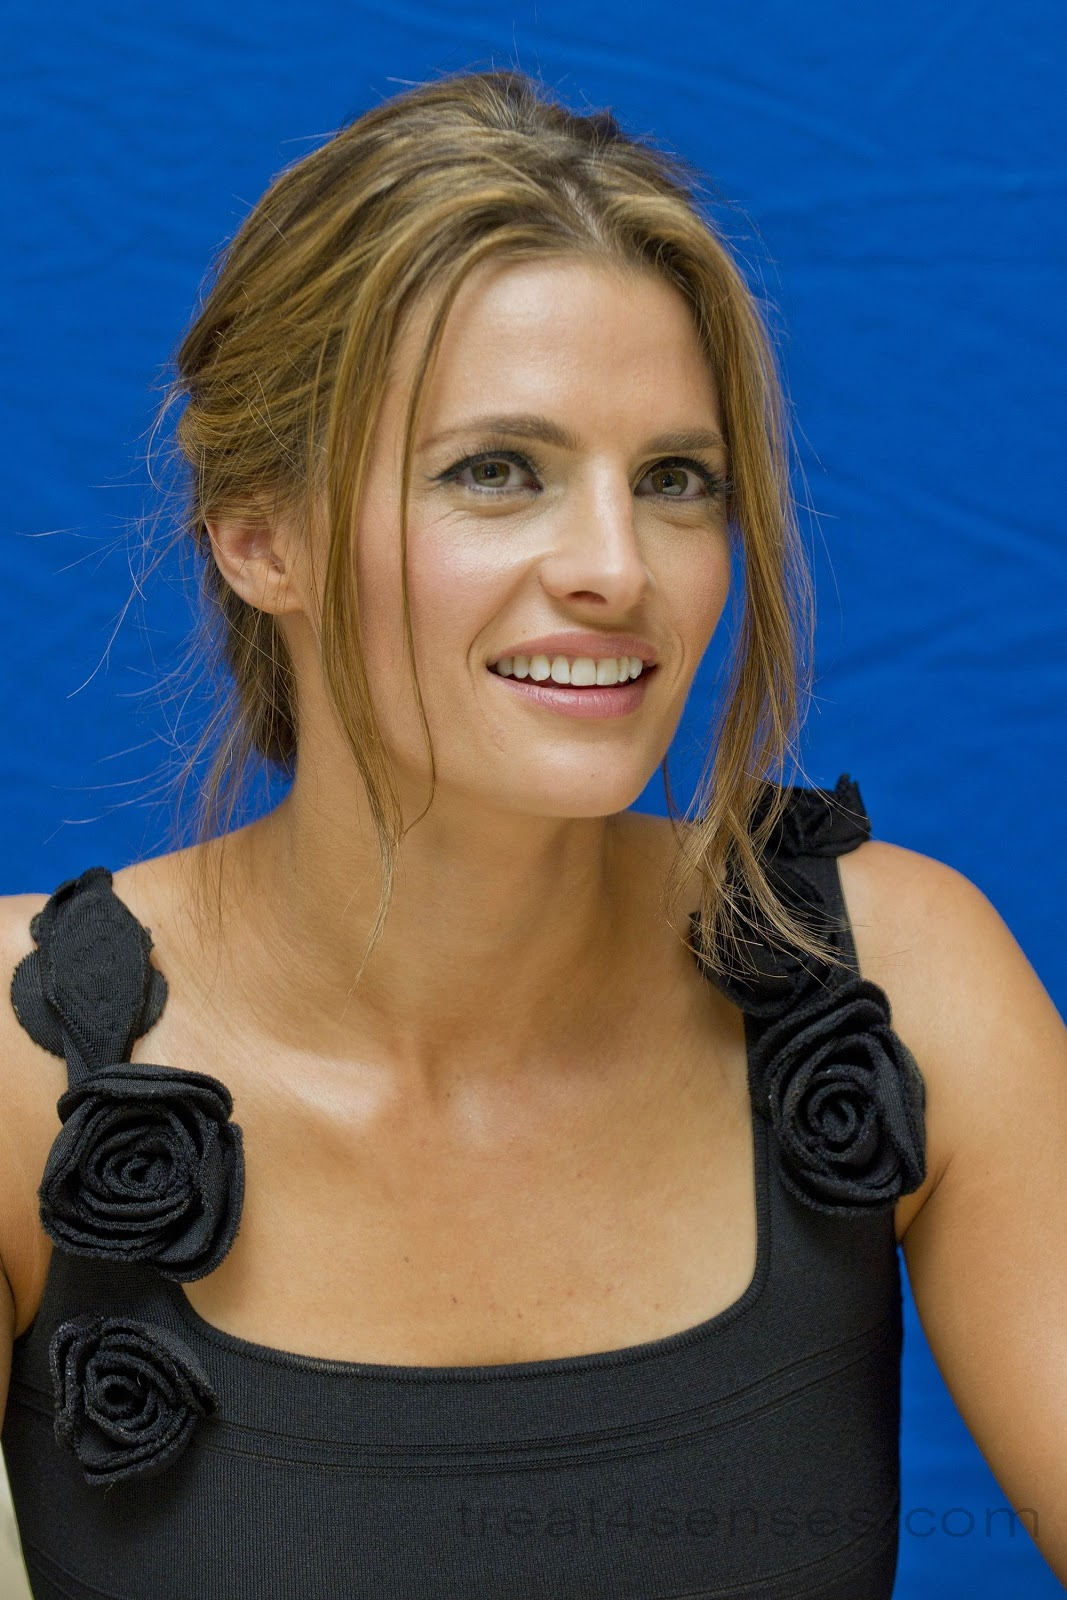 http://3.bp.blogspot.com/-rAnPYT562XI/UJC6fv4gecI/AAAAAAAAK-k/VpG_OmPS8VI/s1600/stana_katic_castle_press_conference_treat4senses_4.jpg